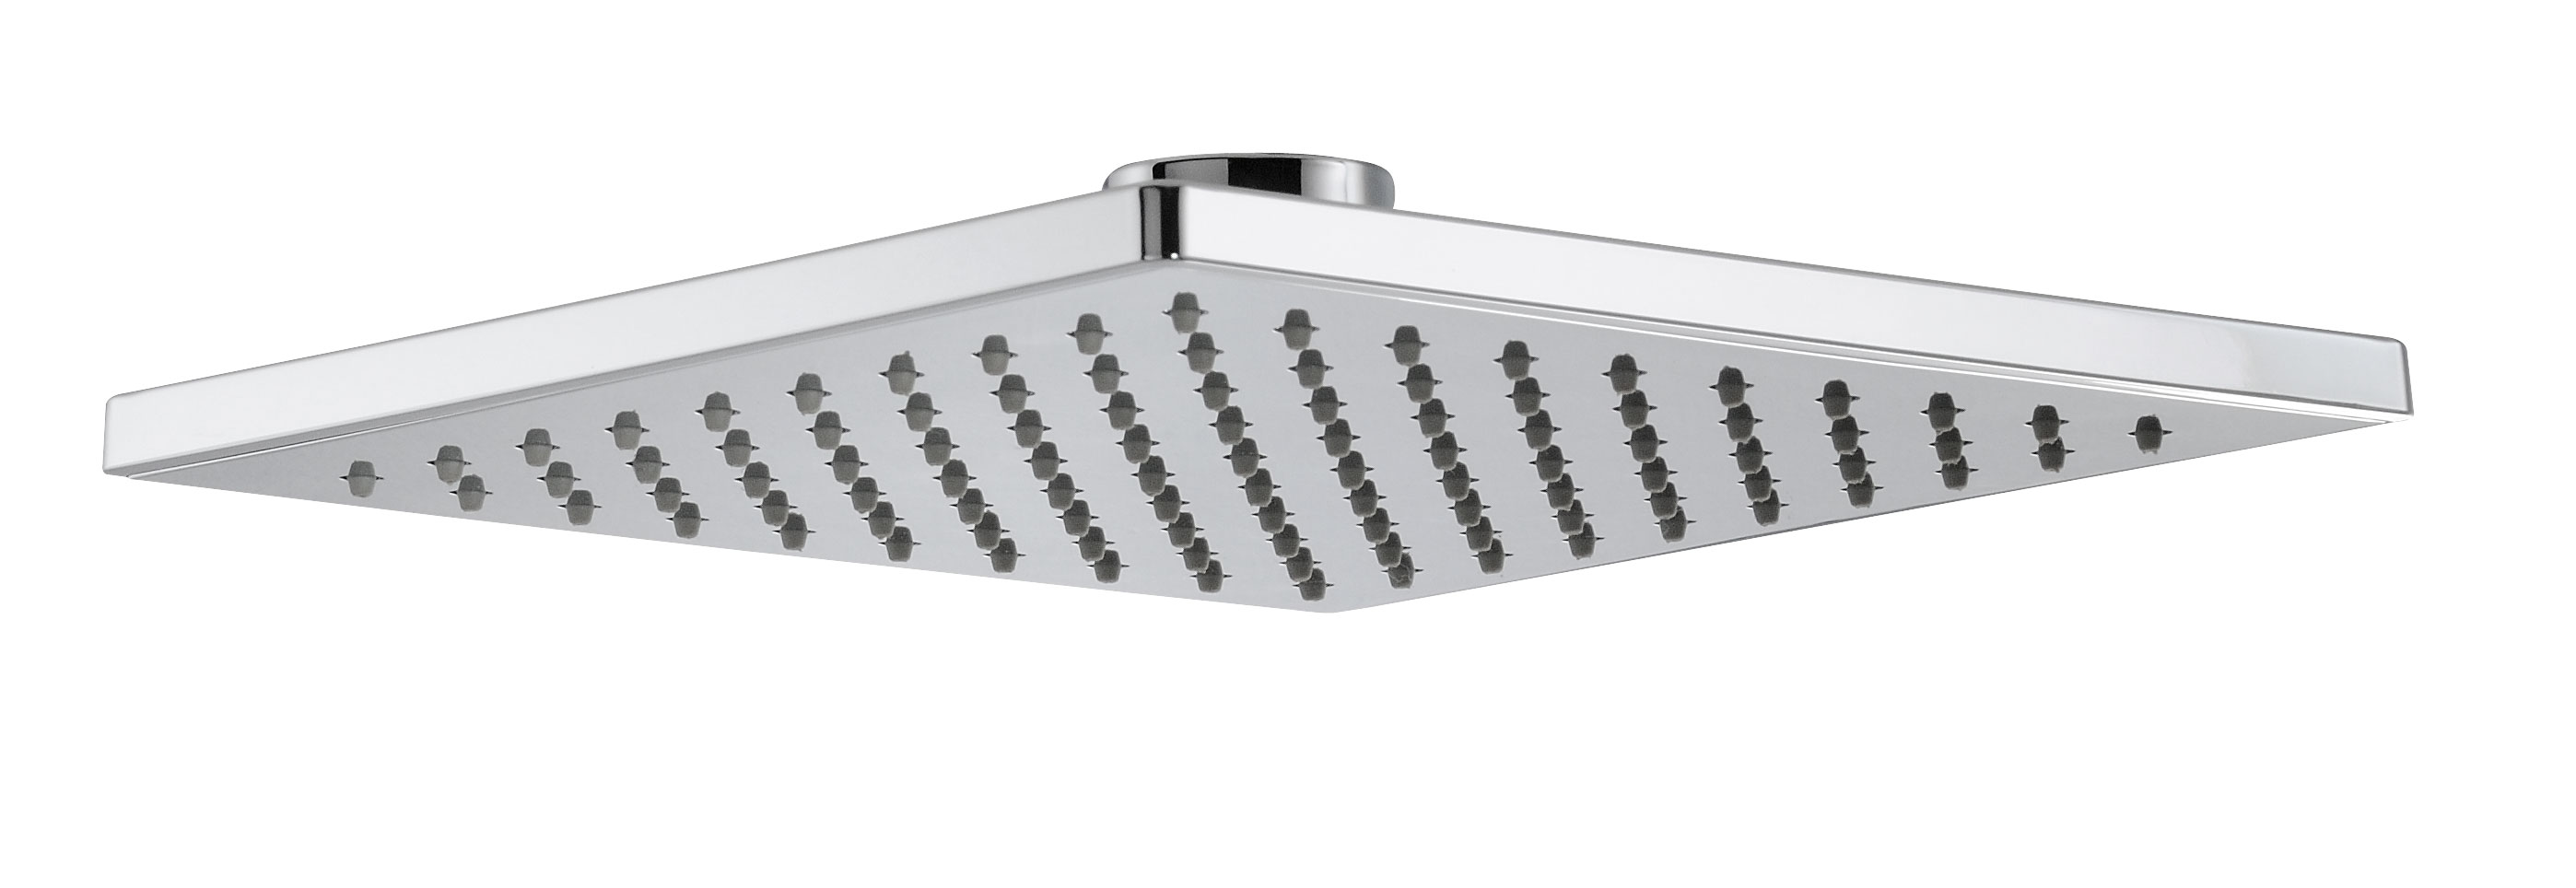 click on ABS Square Showerhead image to enlarge